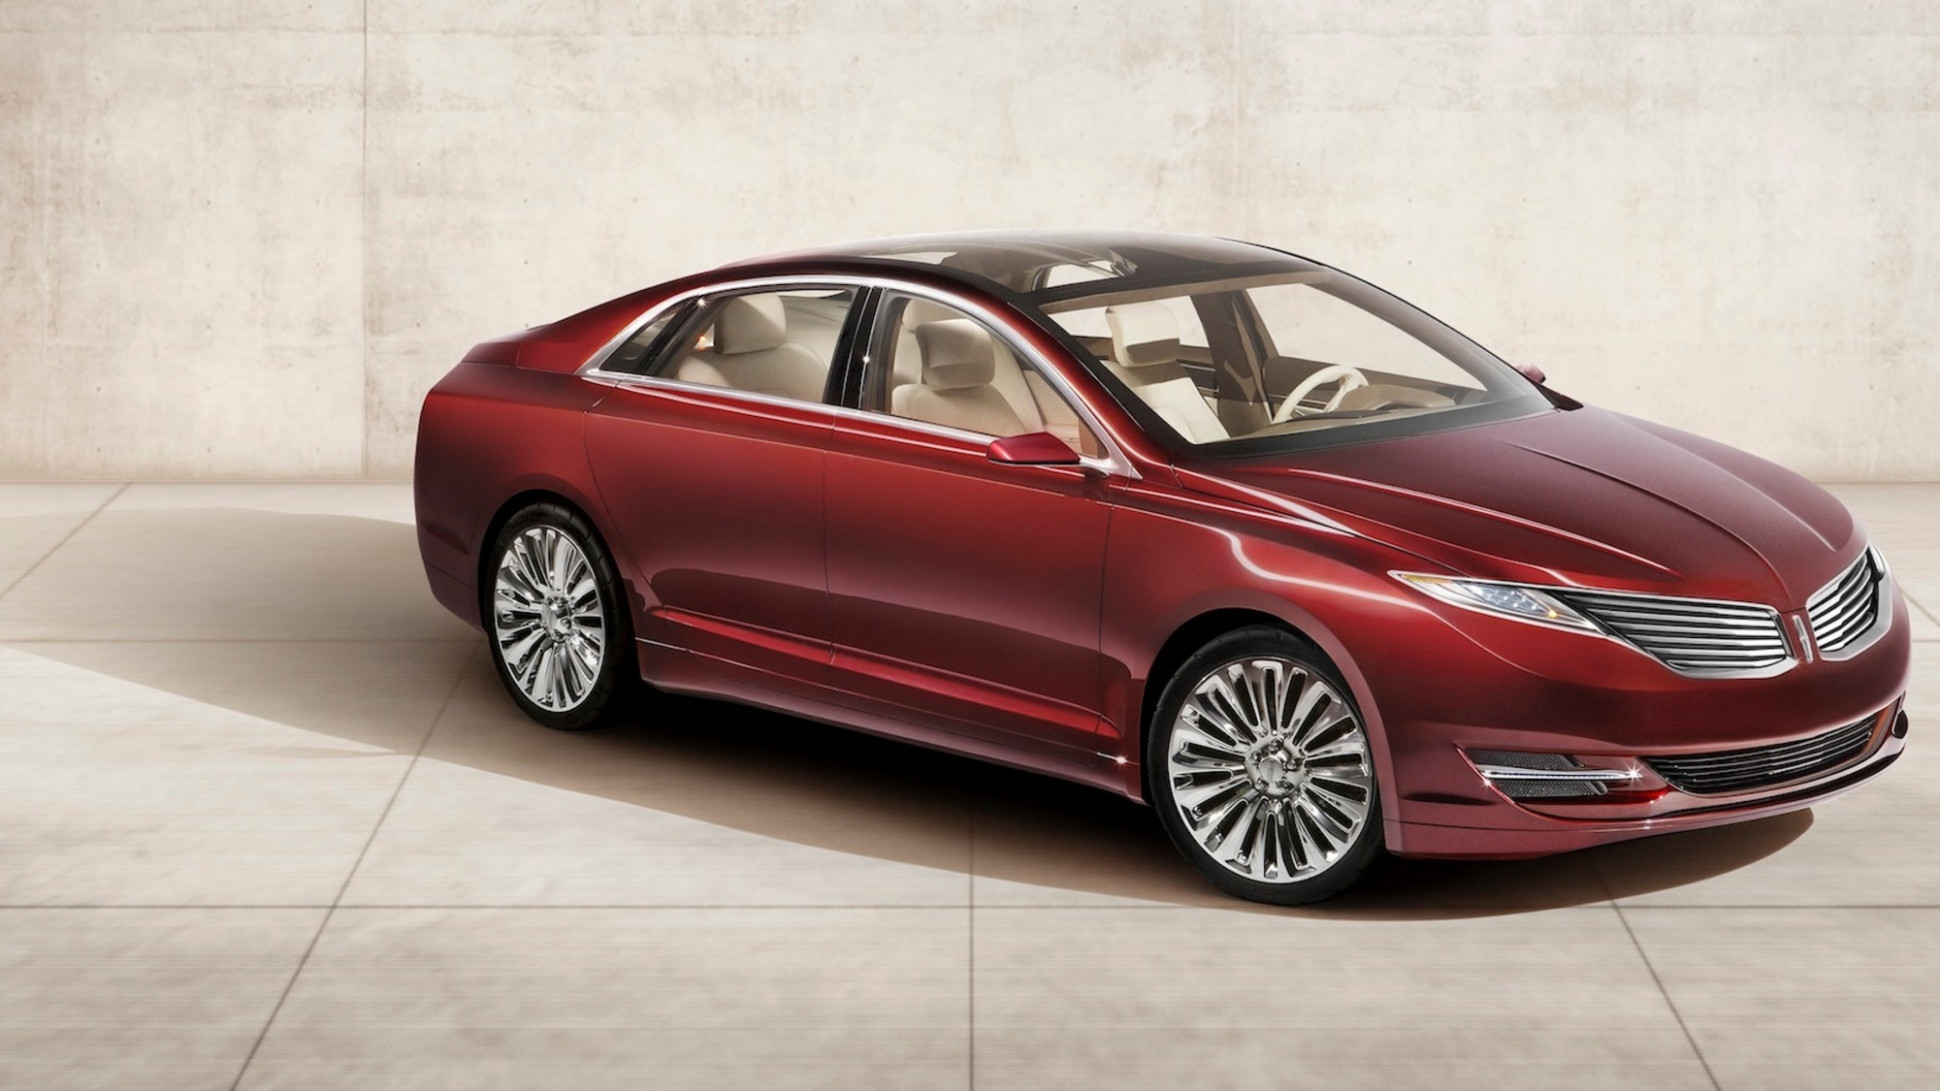 New Model and Performance 2022 Spy Shots Lincoln Mkz Sedan